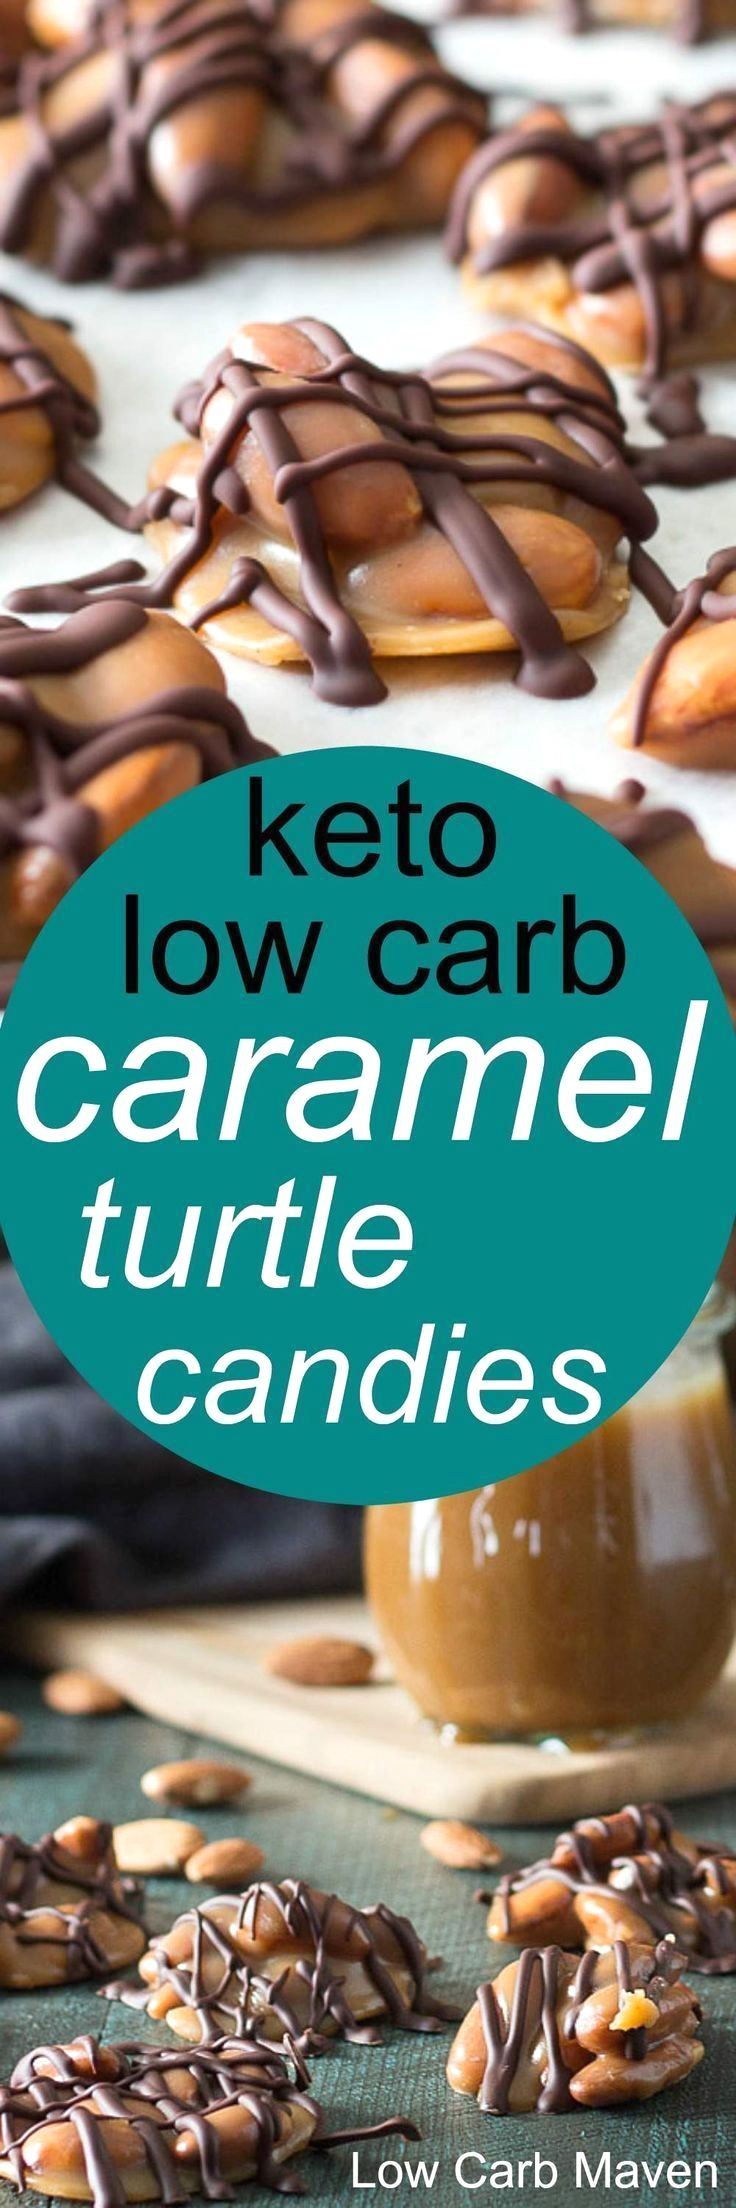 A low carb turtle recipe that's keto and diabetic friendly.This low carb candy recipe uses sugar free caramel sauce, almonds and sugar free chocolate to make delicious chewy candies suitable for any keto diet.